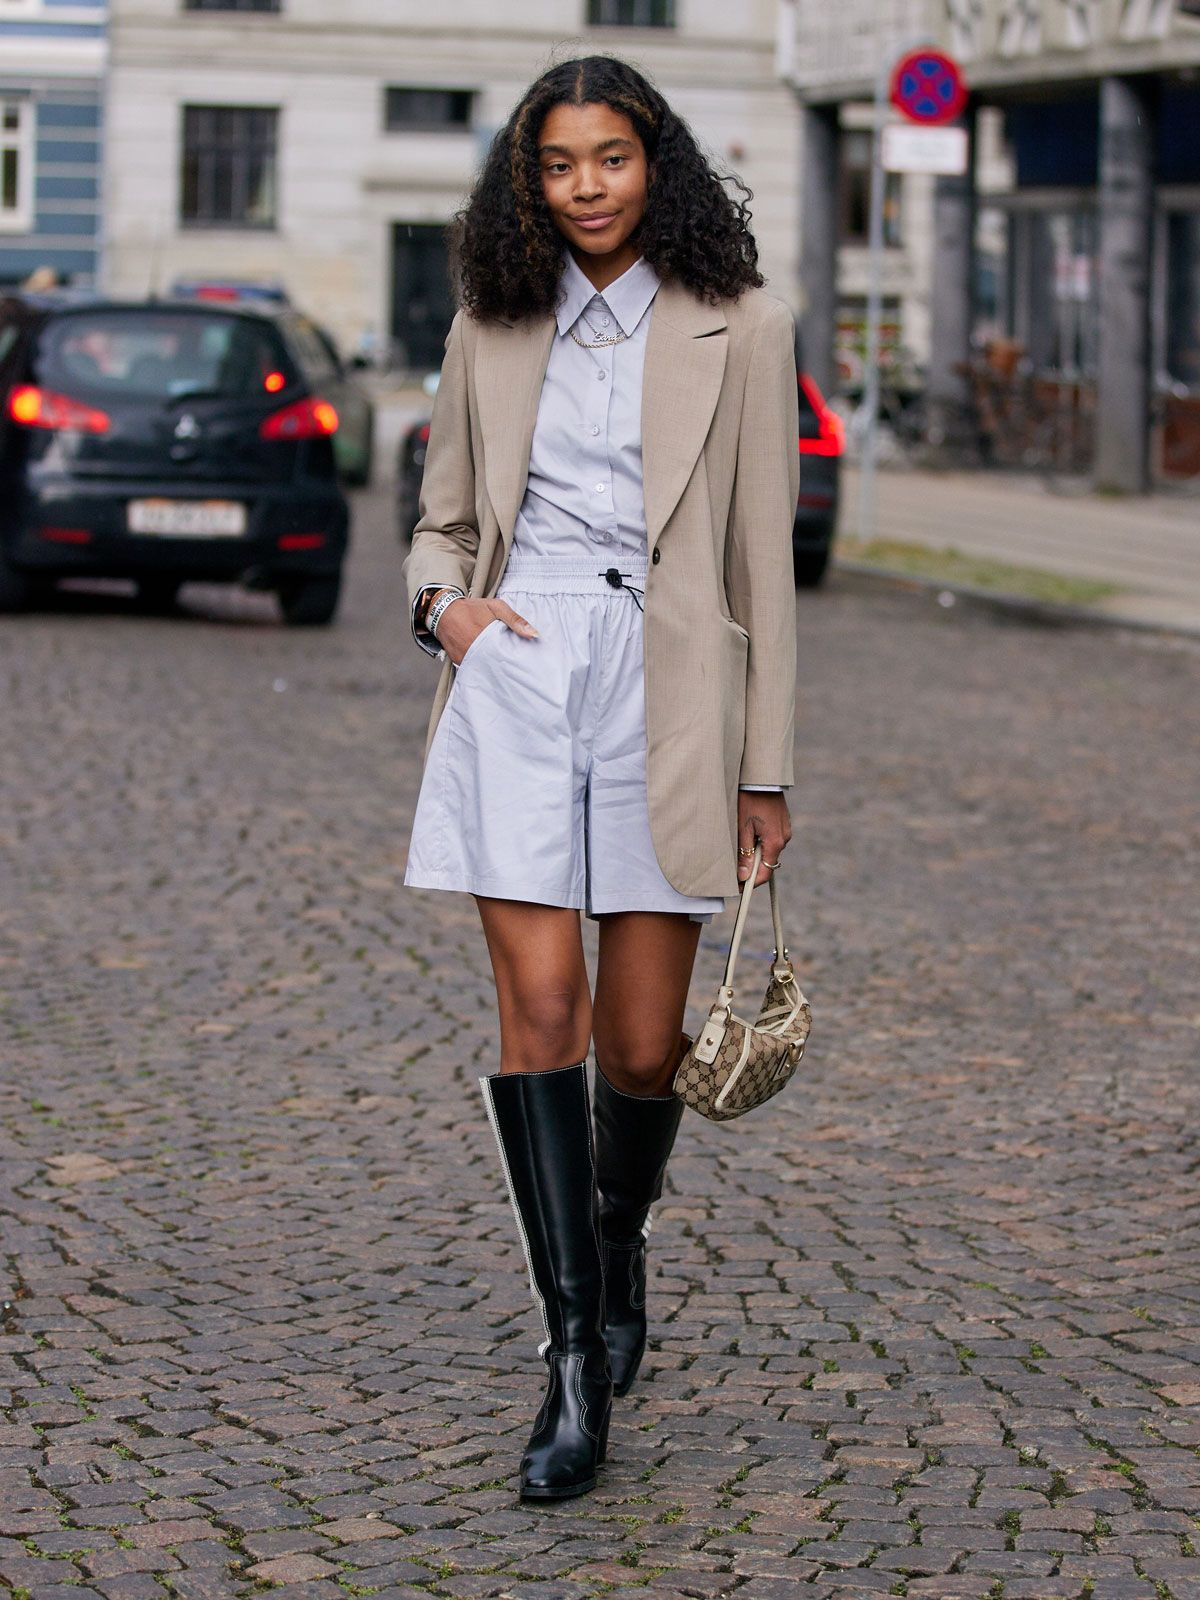 fall shoe trends that are outdated 294941 1629863252917